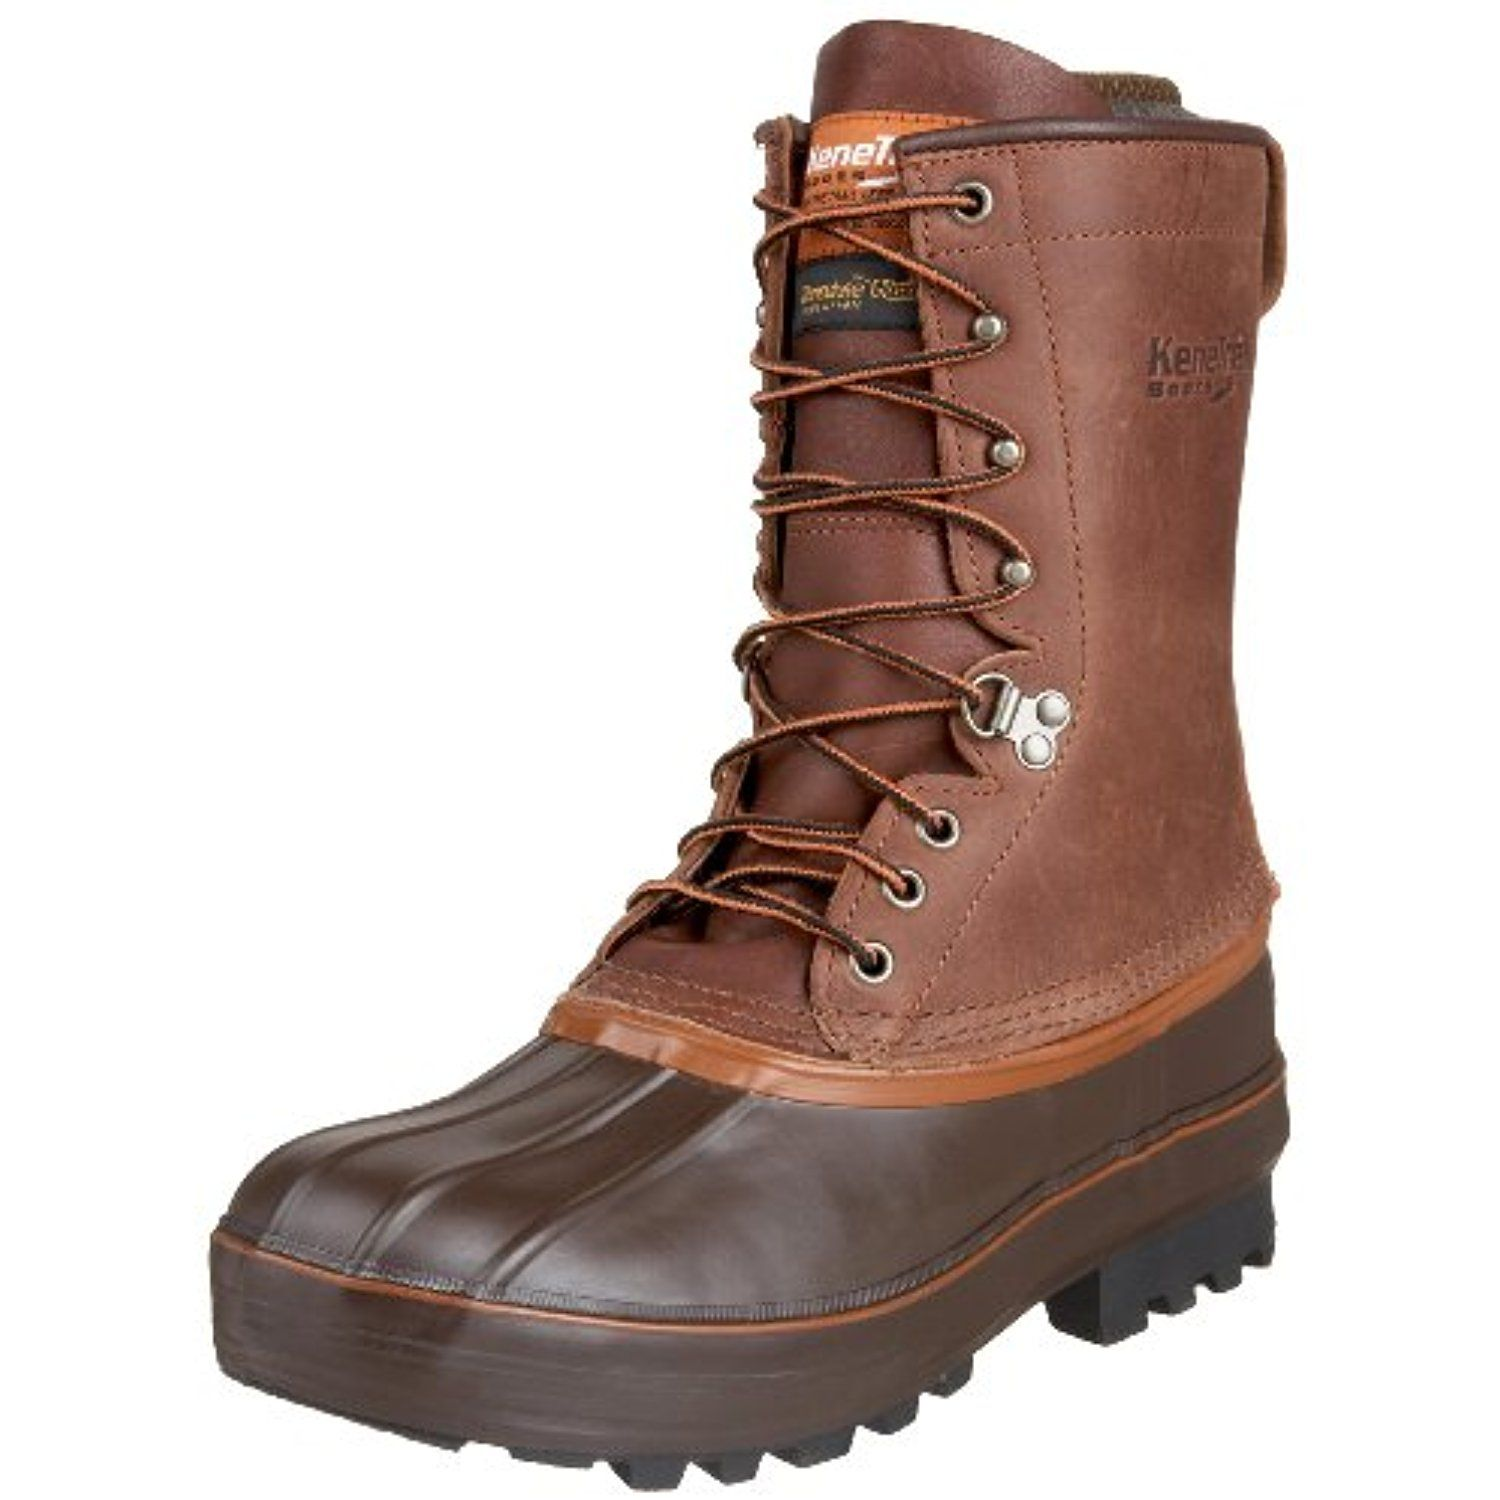 96a37007a7f84 Pin by Allison Rainey on To the Nines   Boots, Duck boots, Mens snow boots